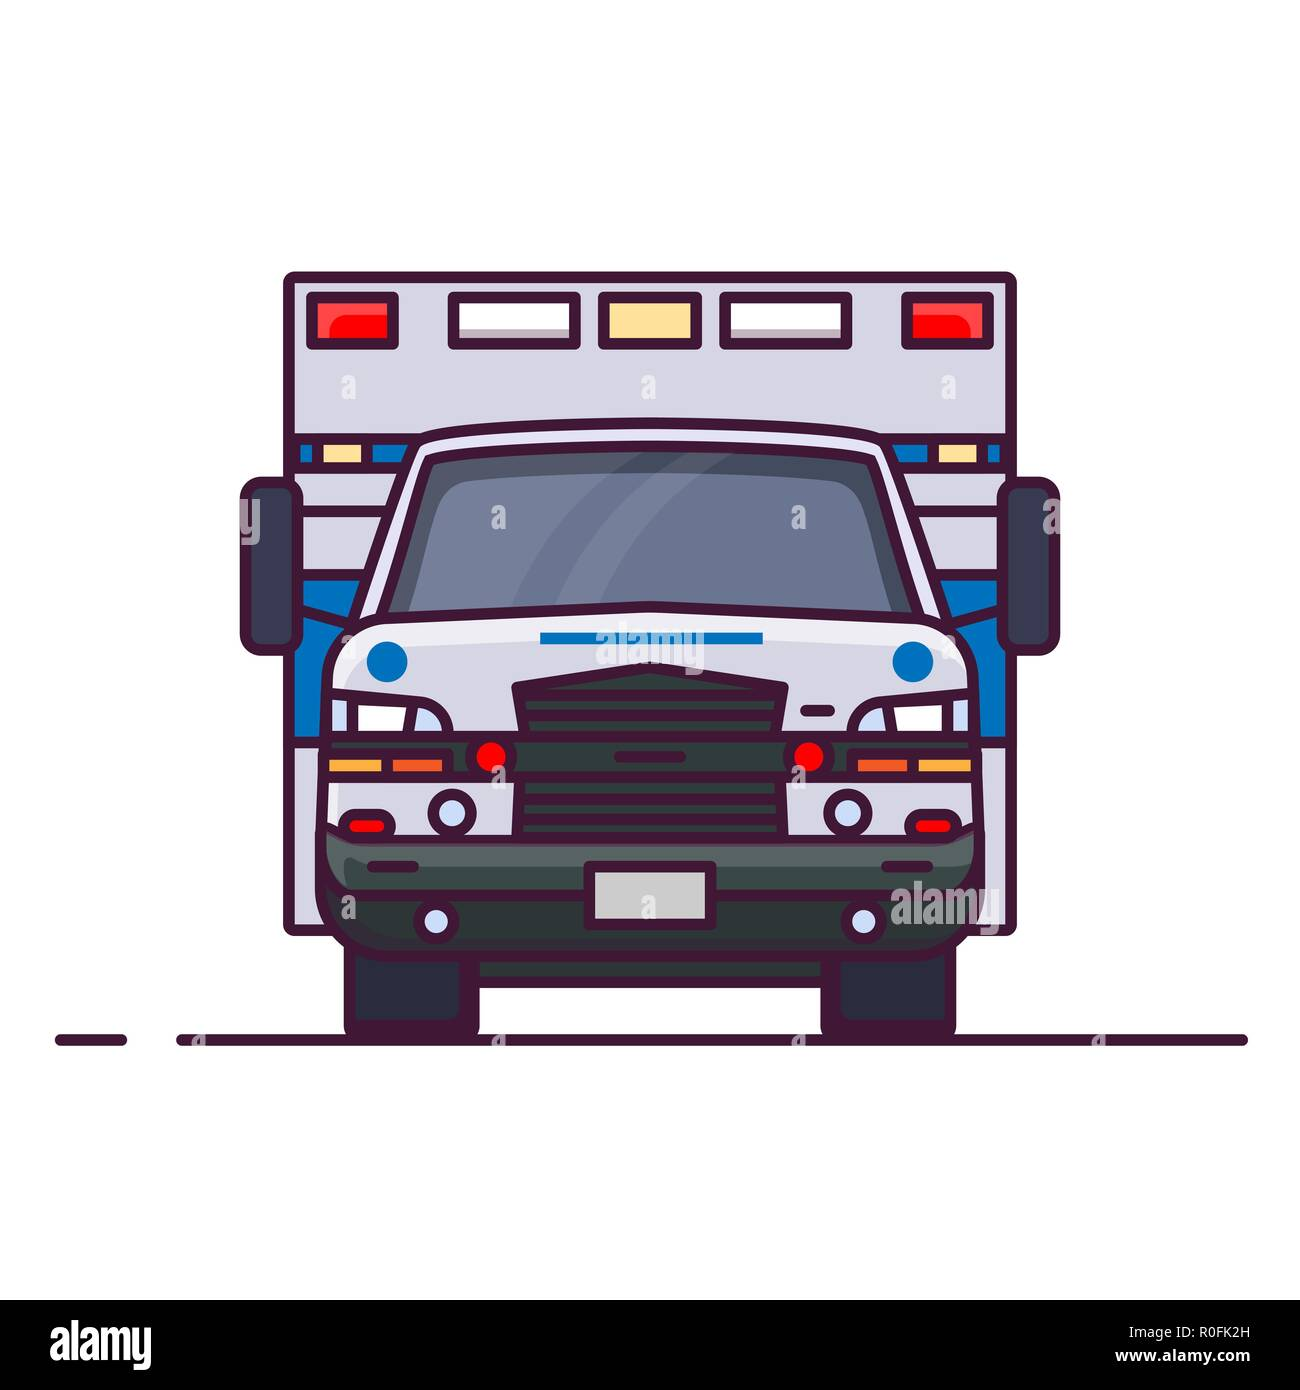 Front View Of Ambulance Car Stock Vector Art Illustration Vector